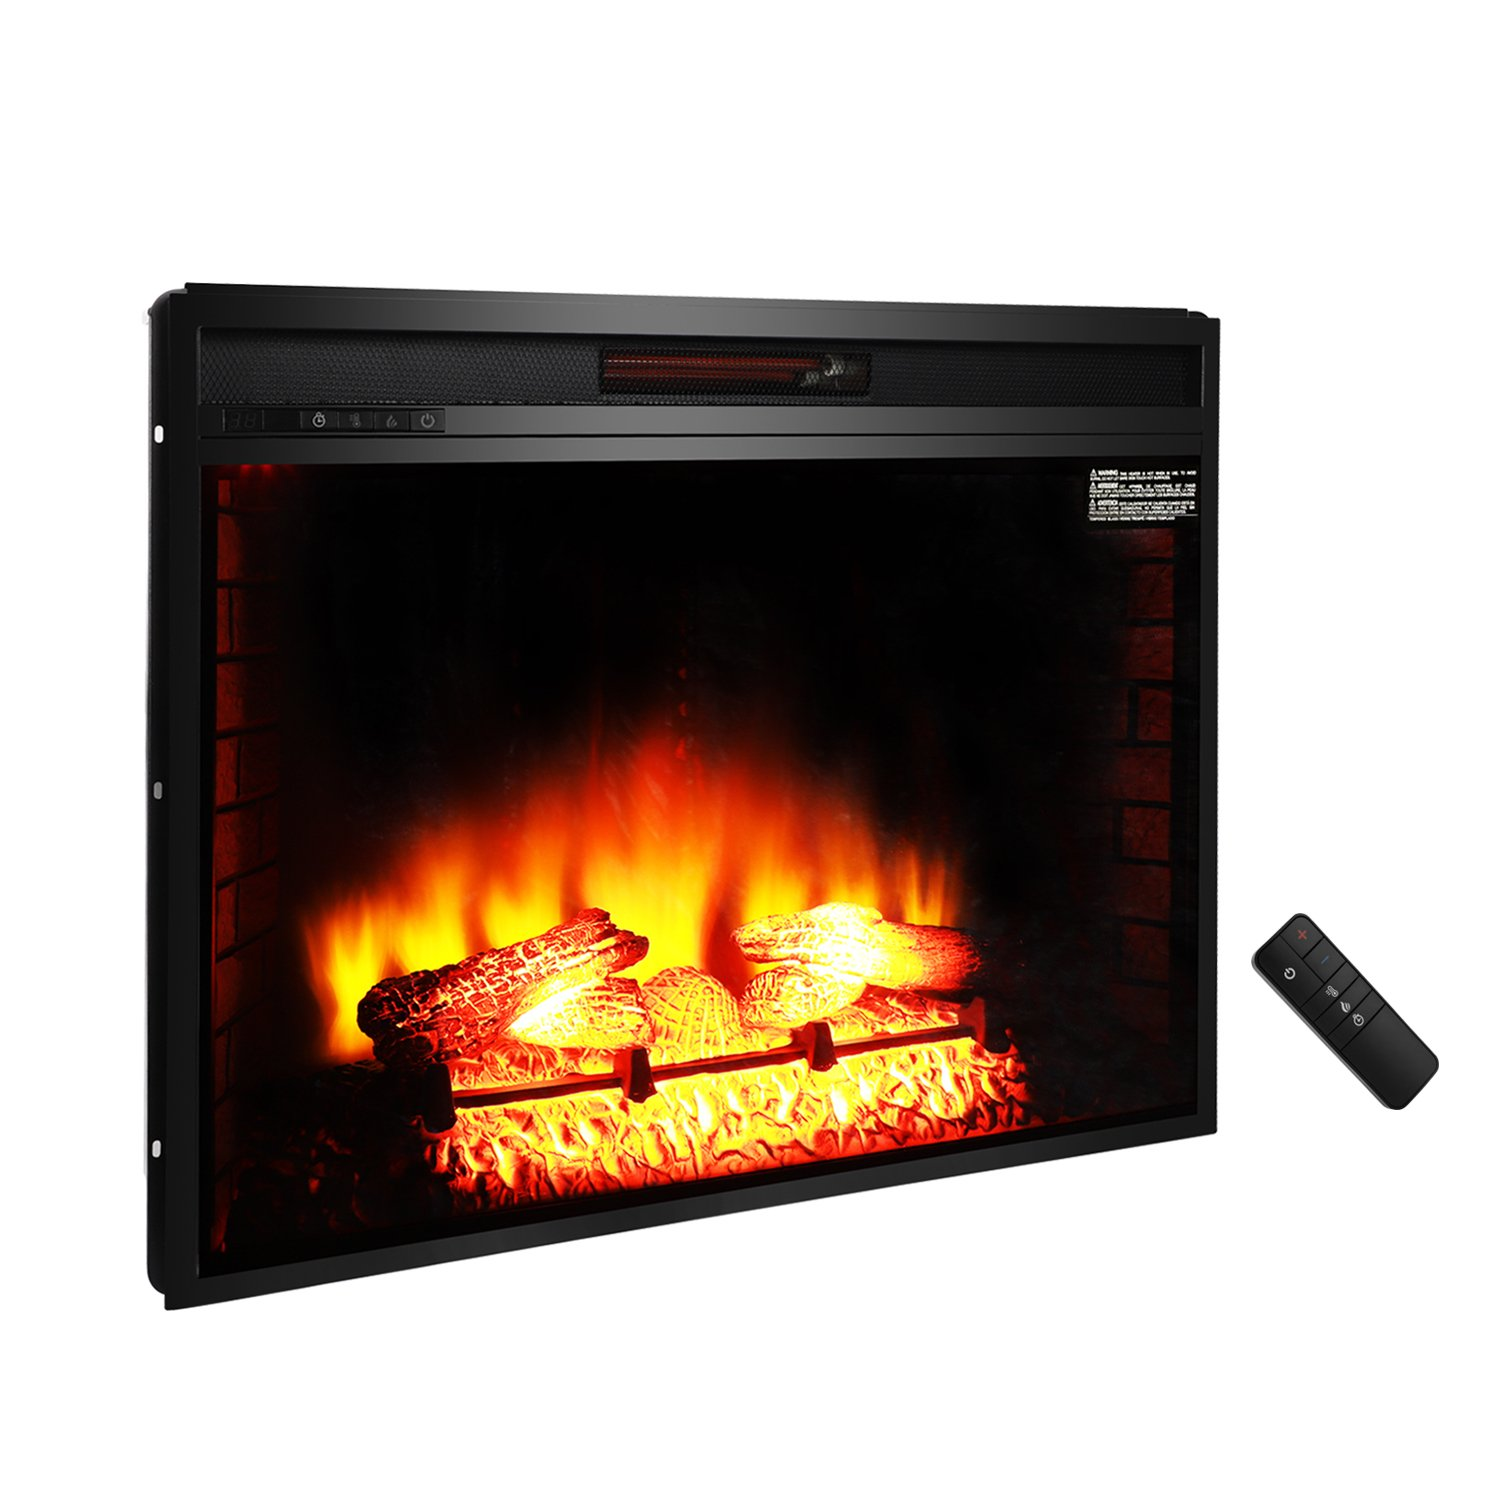 ROVSUN 33'' Recessed Electric Fireplace Insert FireBox 1500W 5200 BTU Heater Adjustable Flame Brightness with Remote Control, Two Side Built-In Wall Tiles Logs, CSA Certified SAFETY (Black)